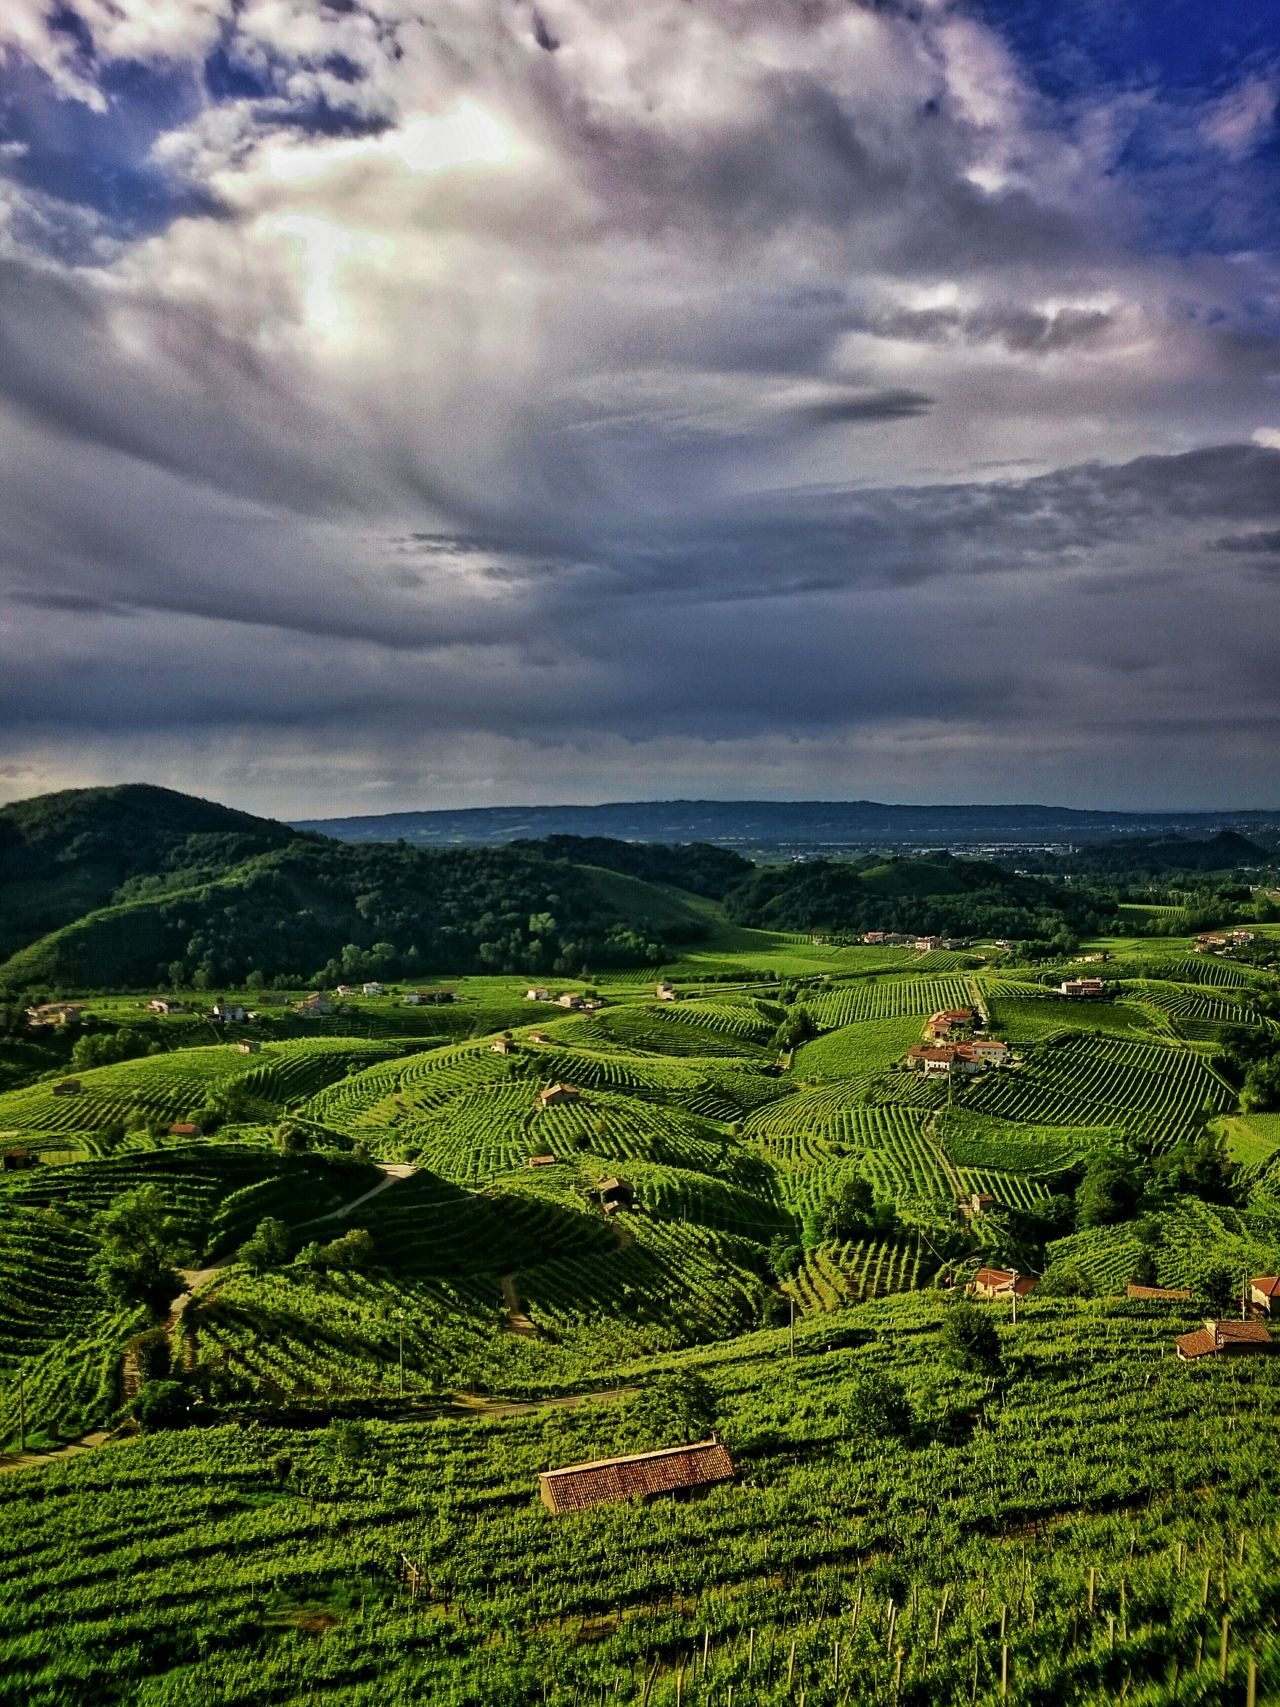 Valdobbiadene Cartizze Cartizzehills Prosecco Proseccohills Proseccosuperiore Italy Veneto Cloud Clouds And Sky The Great Outdoors - 2016 EyeEm Awards Color Palette A Bird's Eye View Flying High